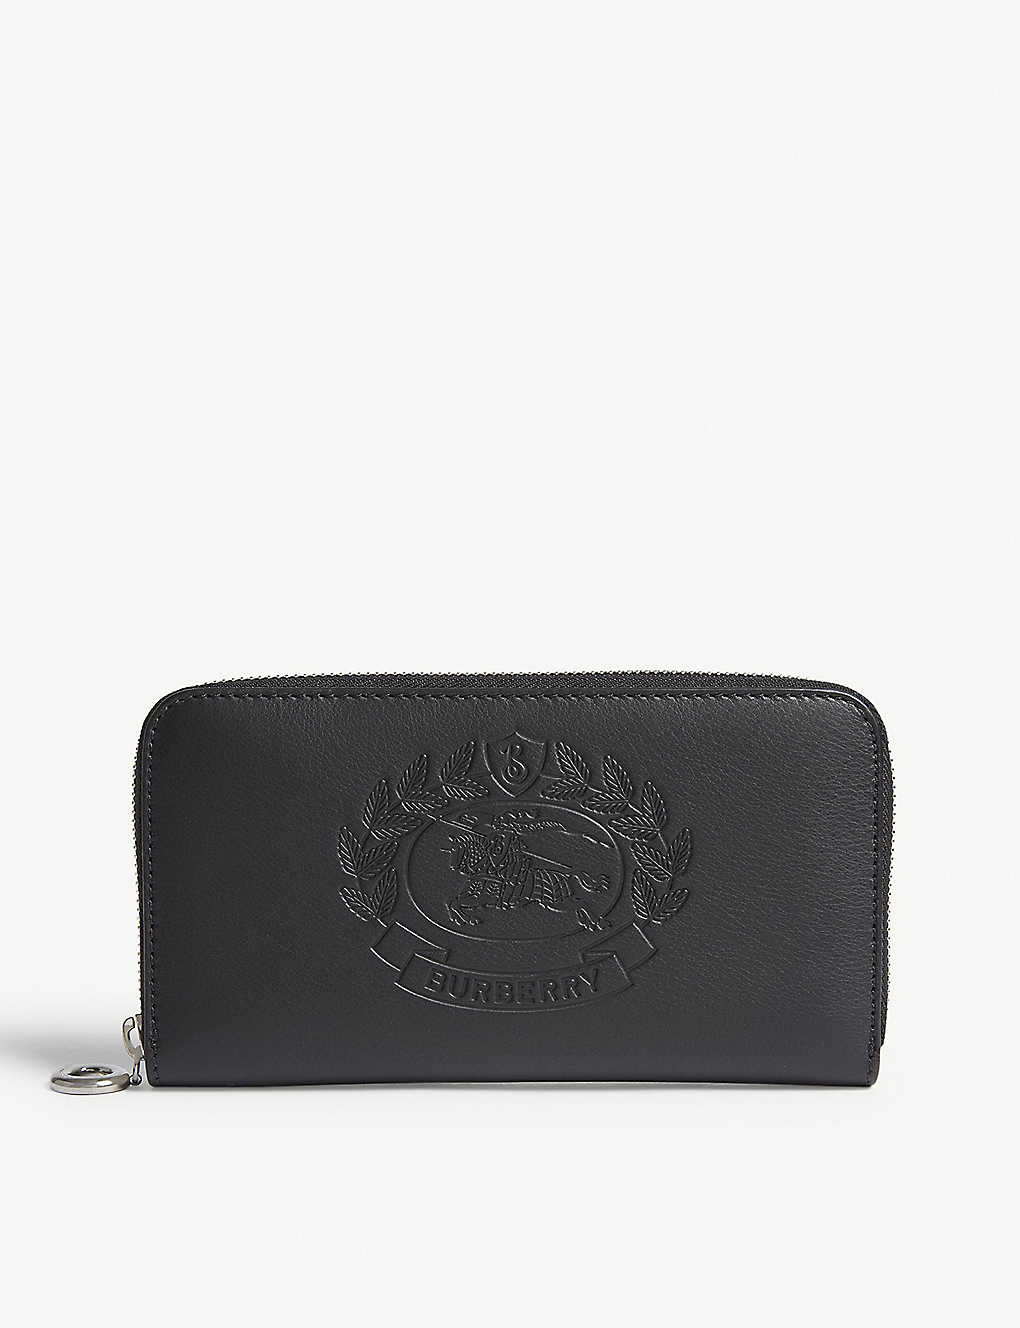 46281152e26e BURBERRY - Embossed crest leather zipper-around wallet